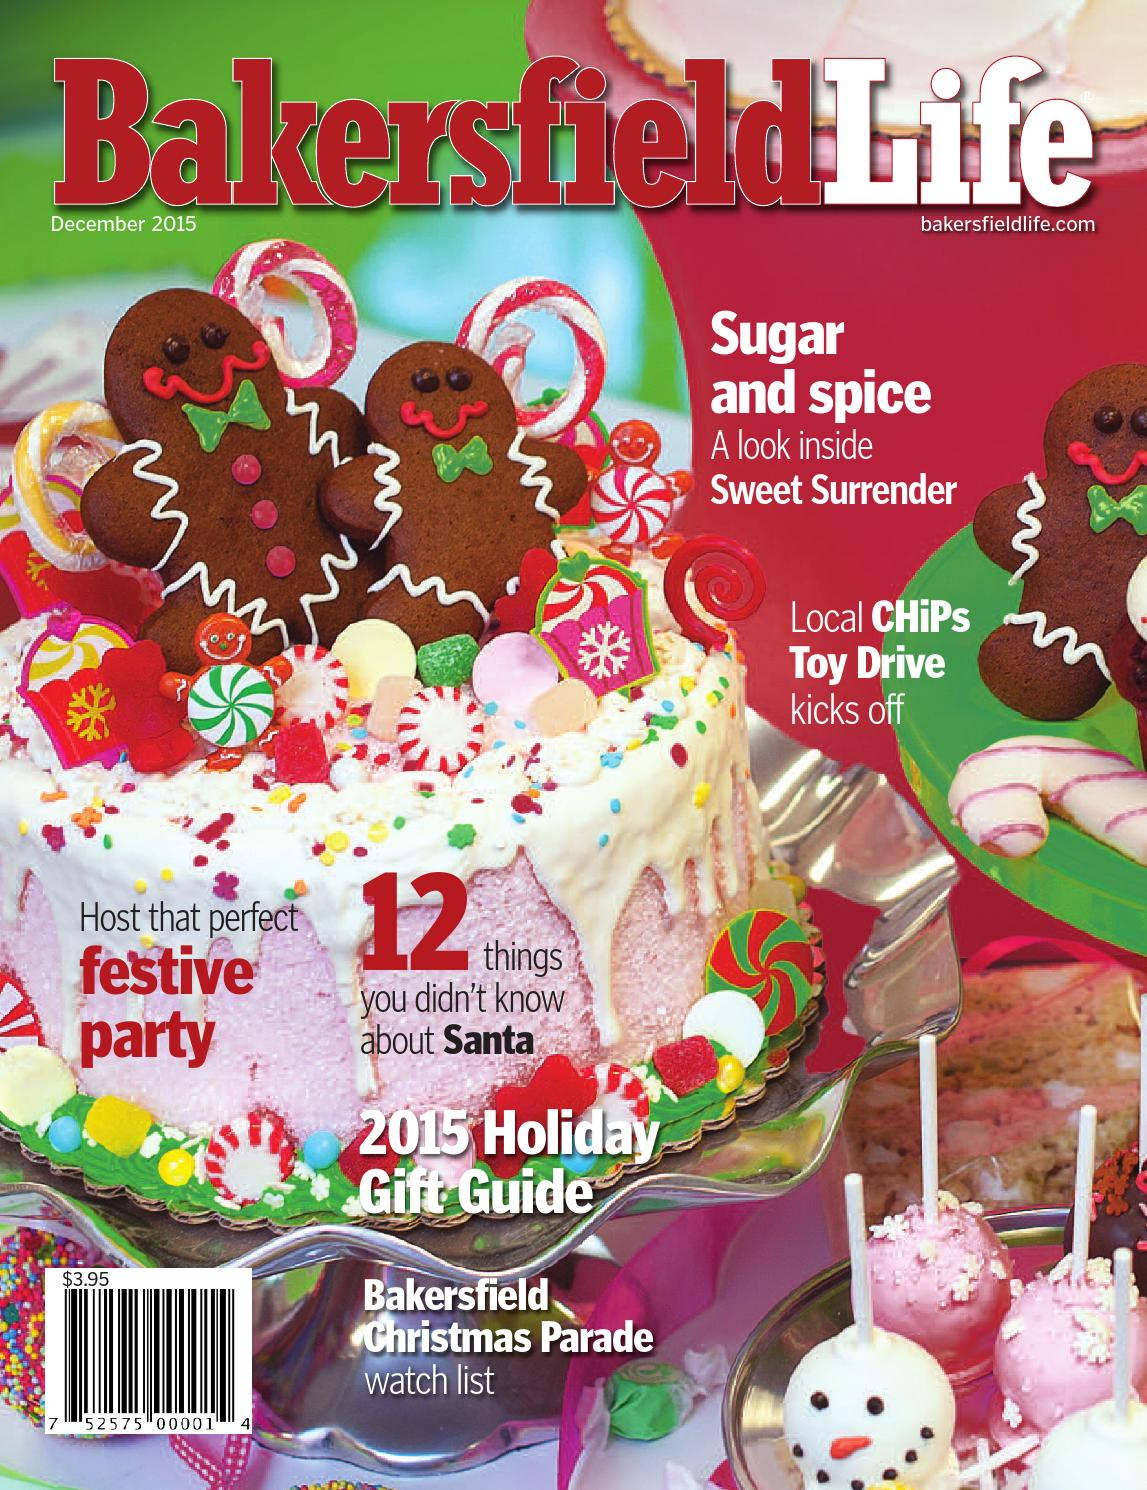 Bakersfield life magazine december 2015 by tbc media for Craft stores bakersfield ca